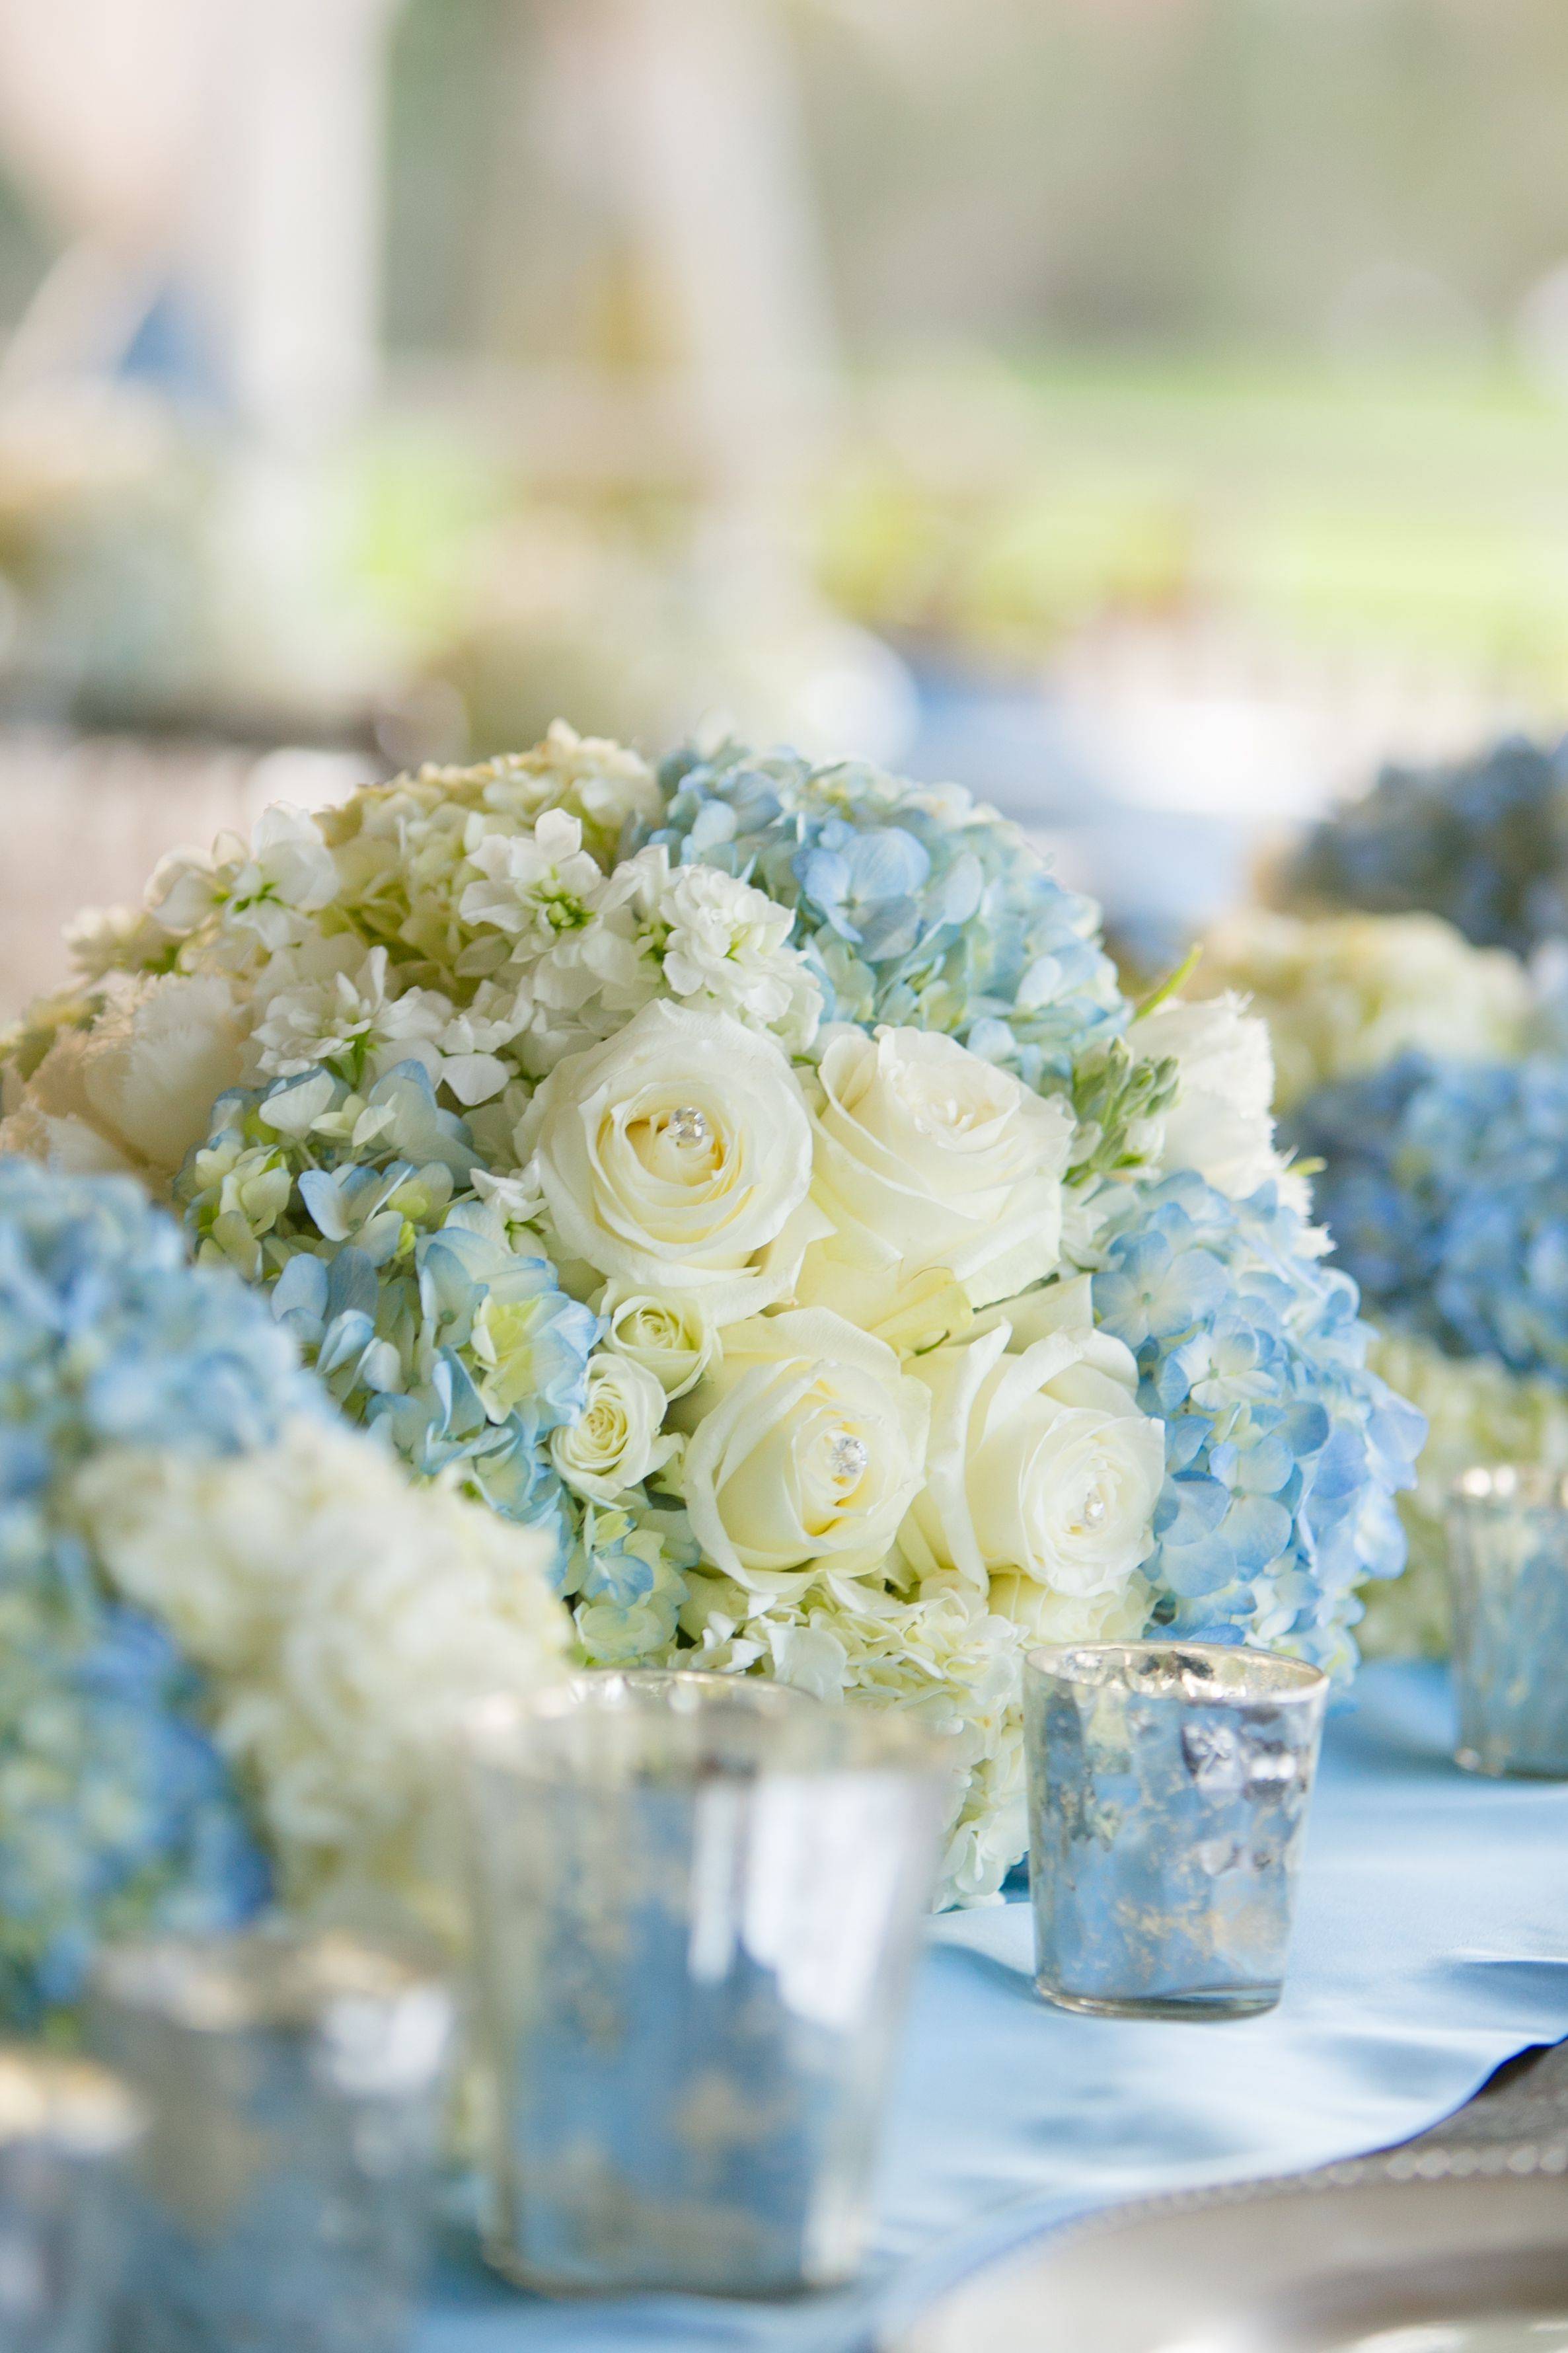 Pin By Ashtin Marusa On Wedding Flowers In 2018 Pinterest